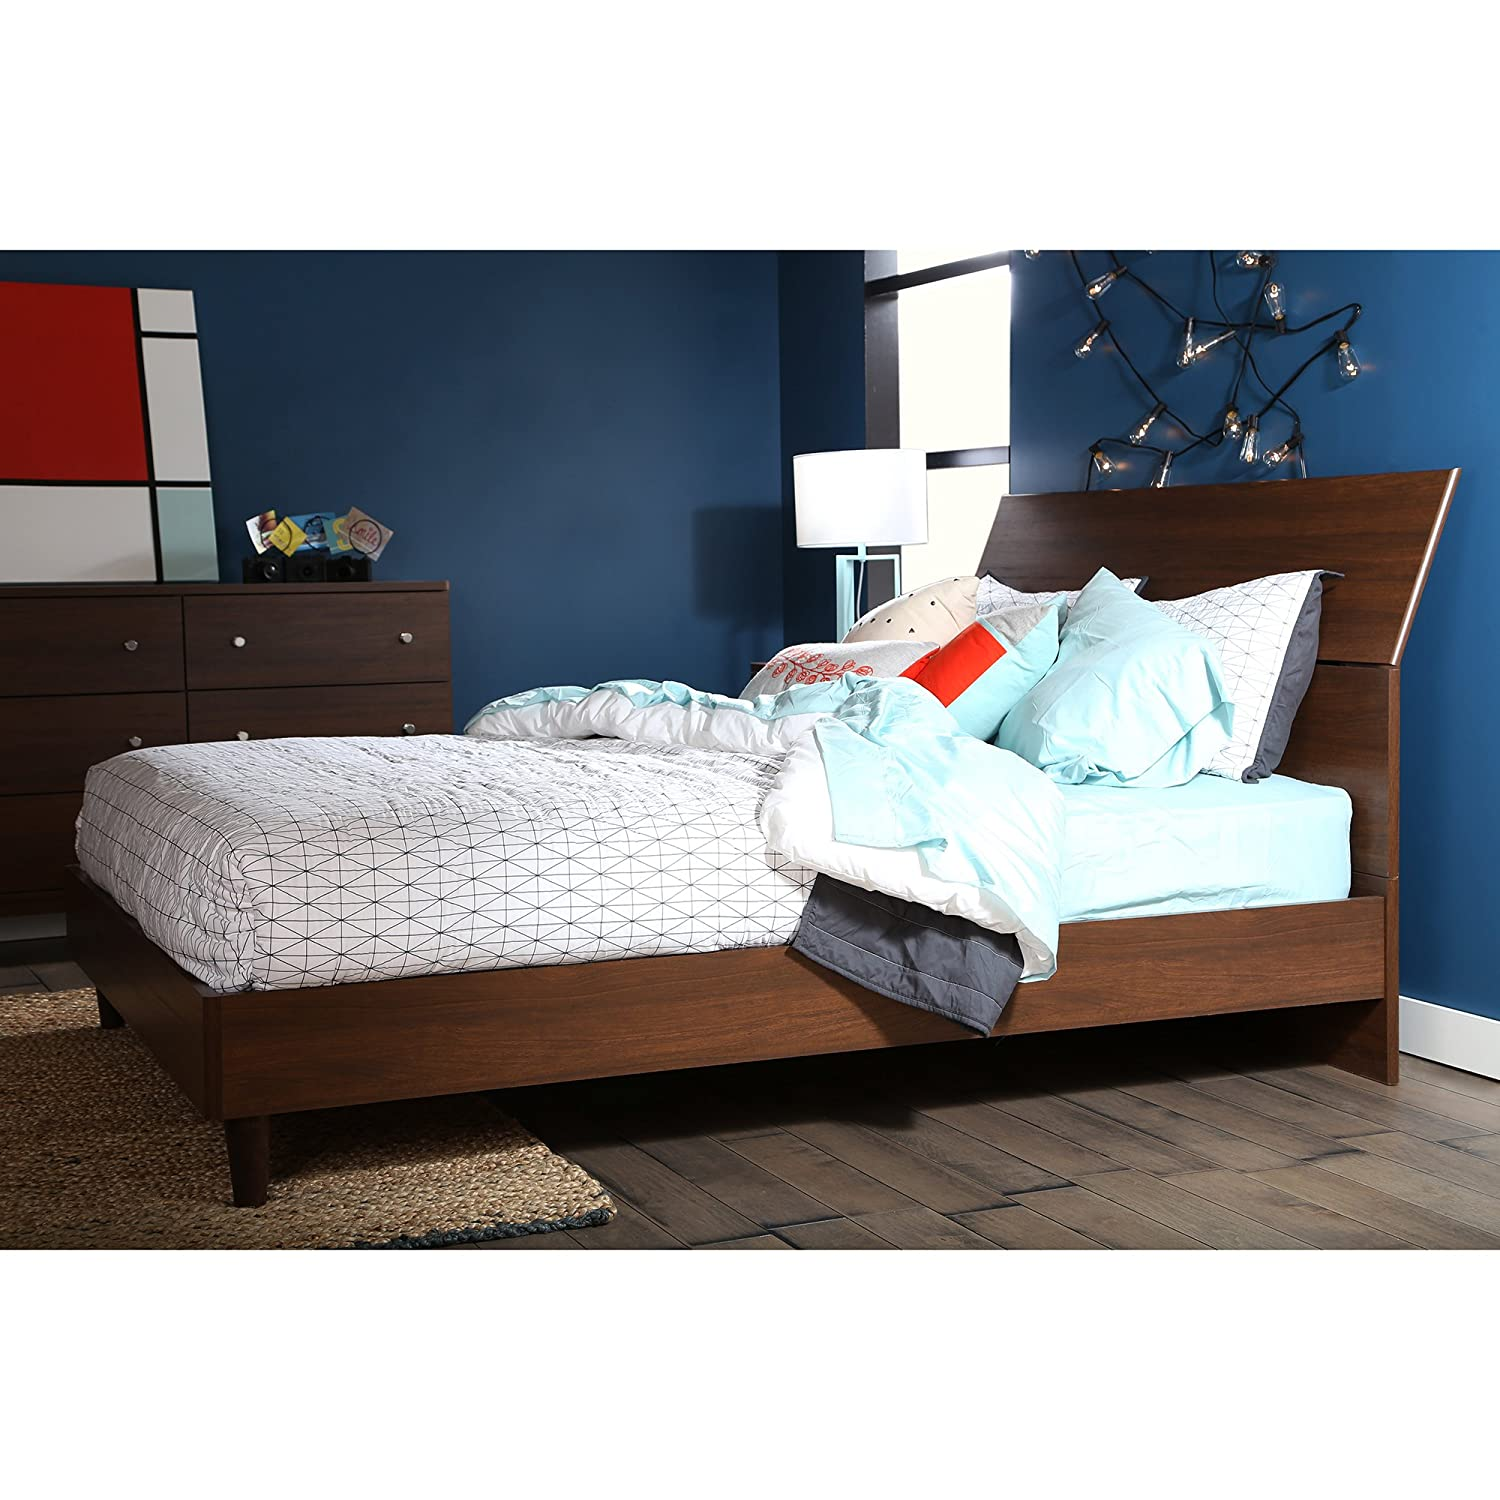 amazoncom south shore 60inch olly midcentury modern platform bed with headboard queen brown walnut kitchen u0026 dining